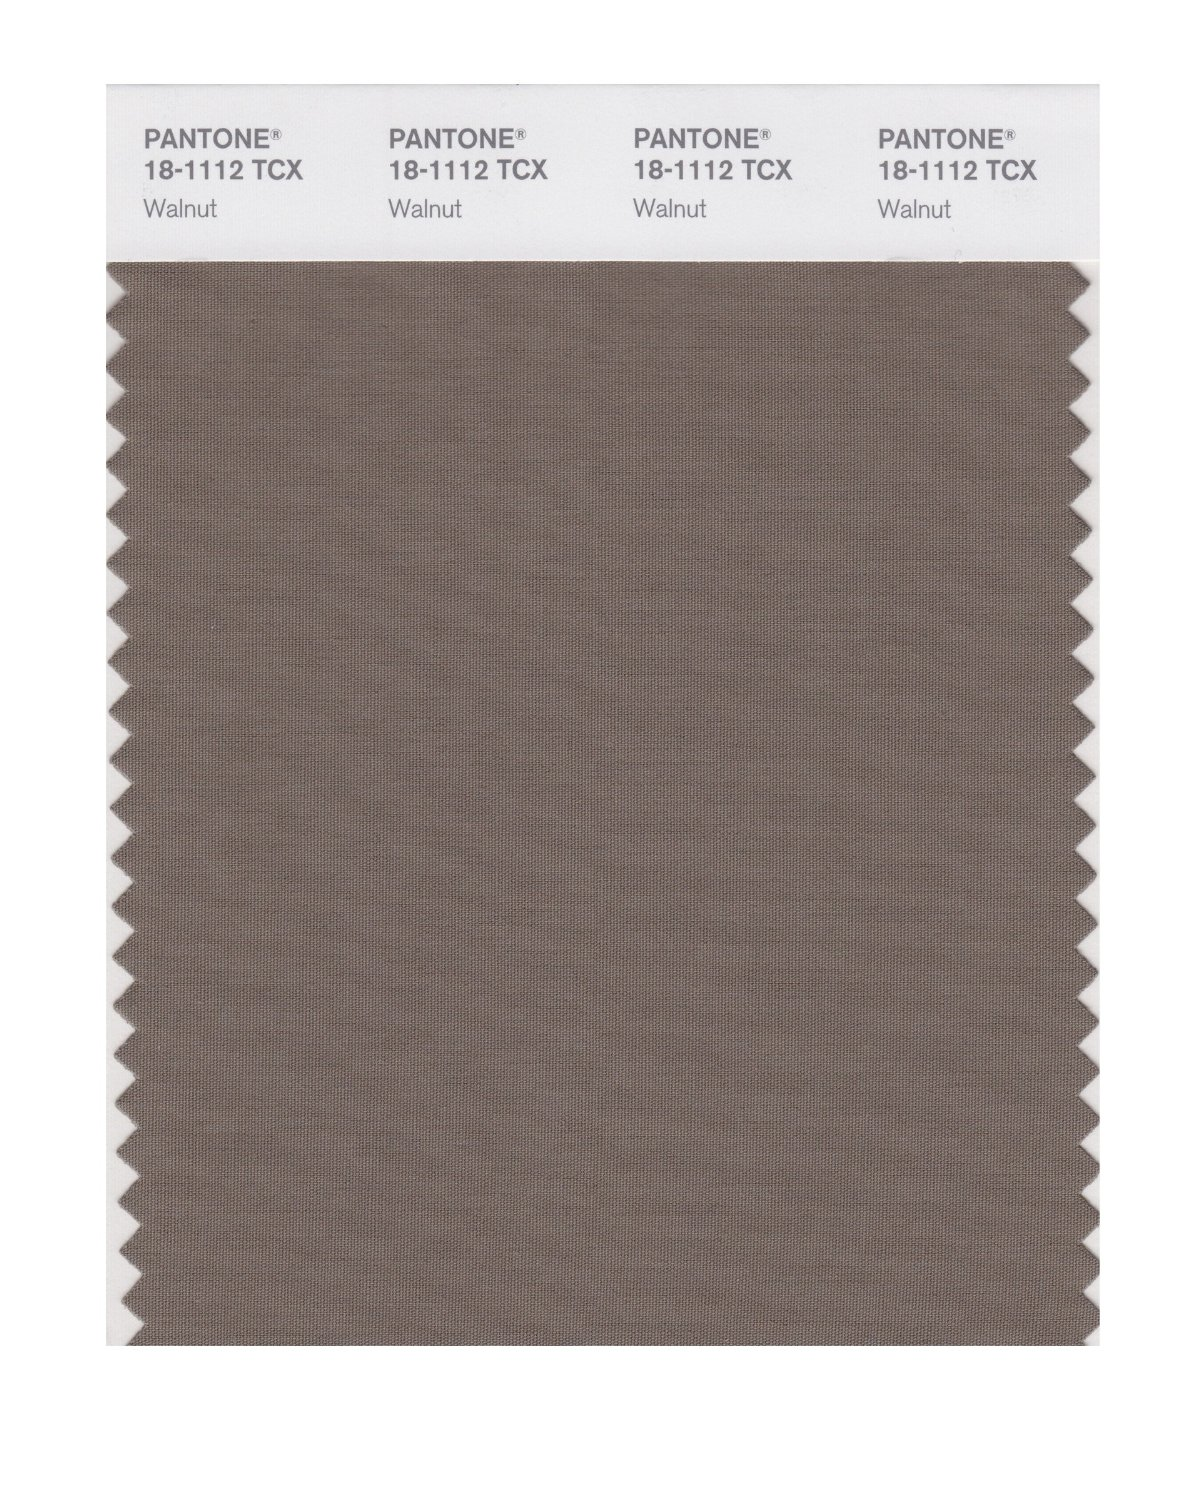 Pantone Smart Swatch 18-1112 Walnut